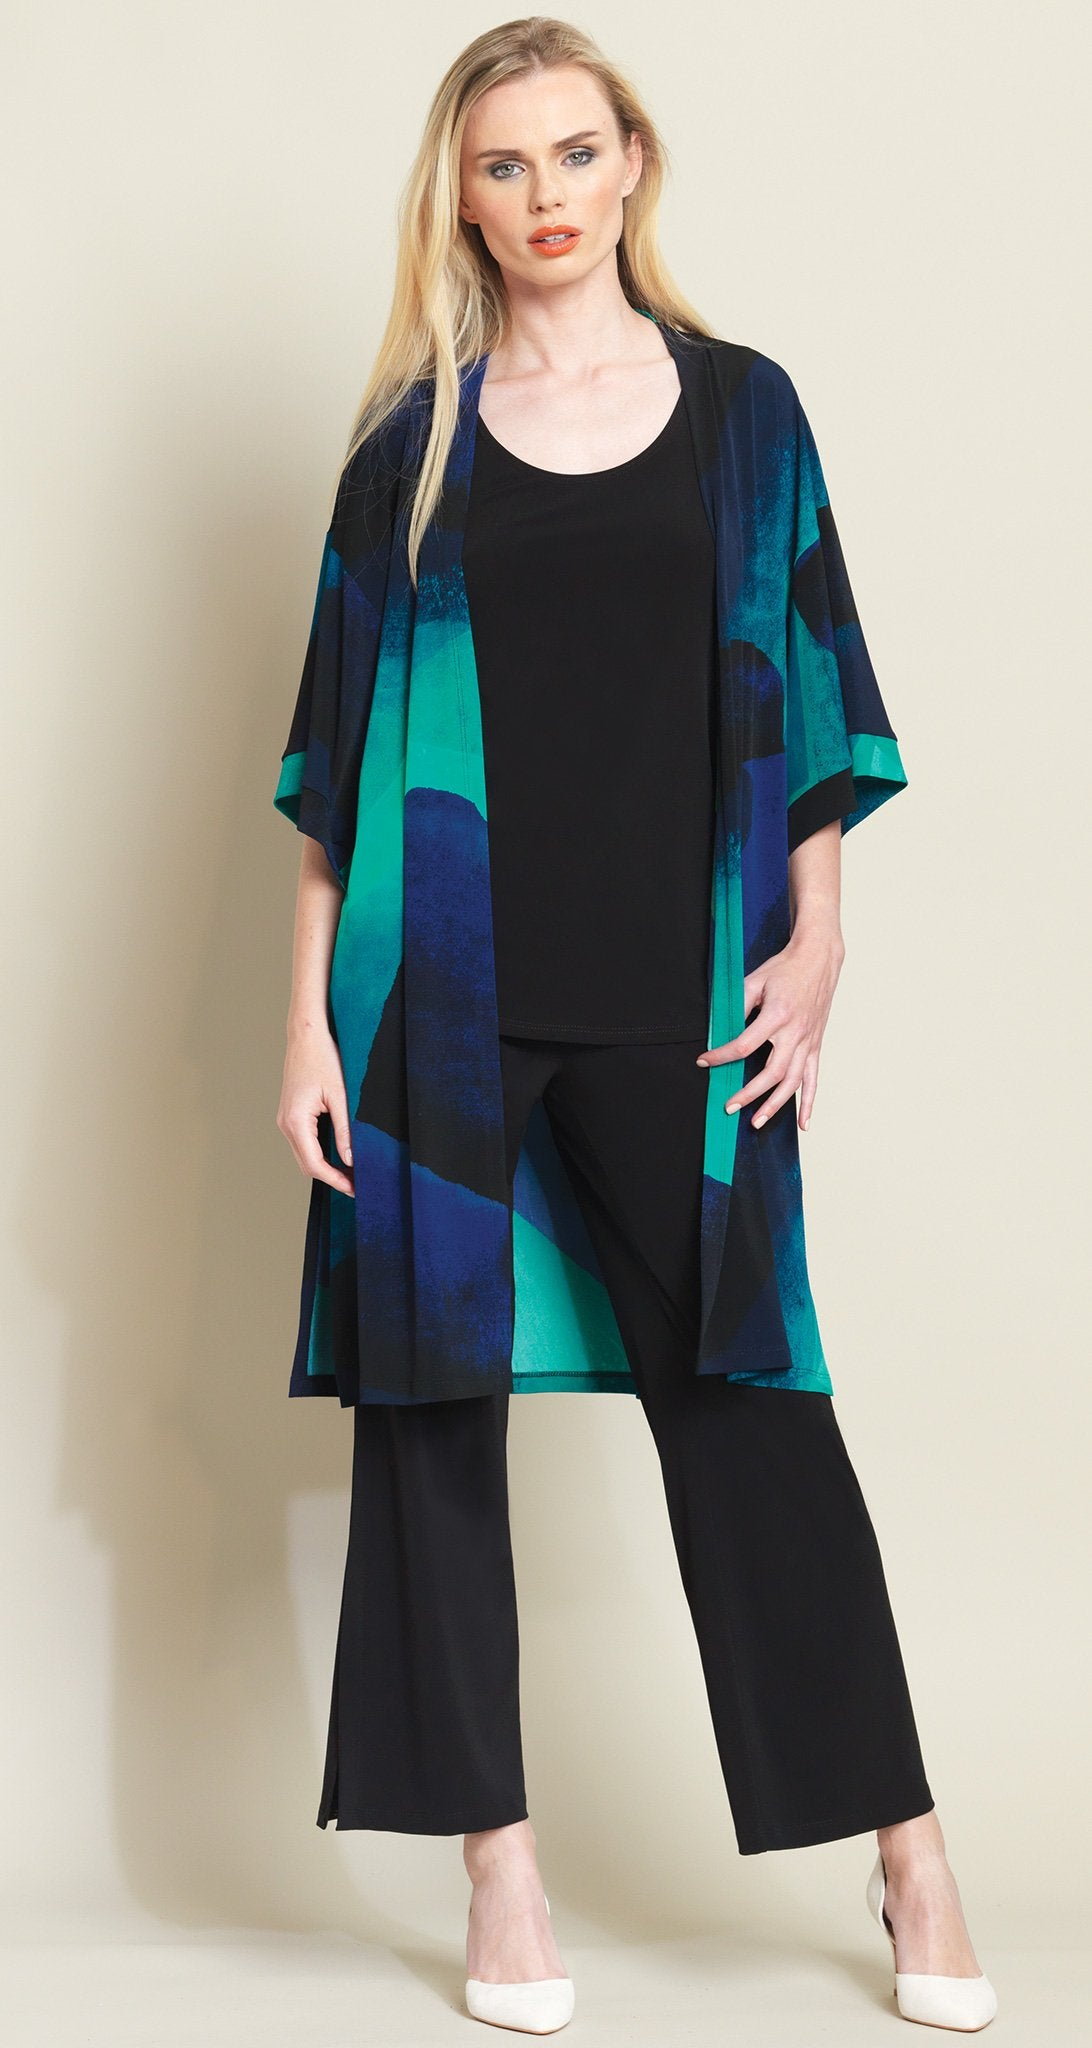 Watercolor Modern Kimono Duster - Blue Multi - Final Sale!